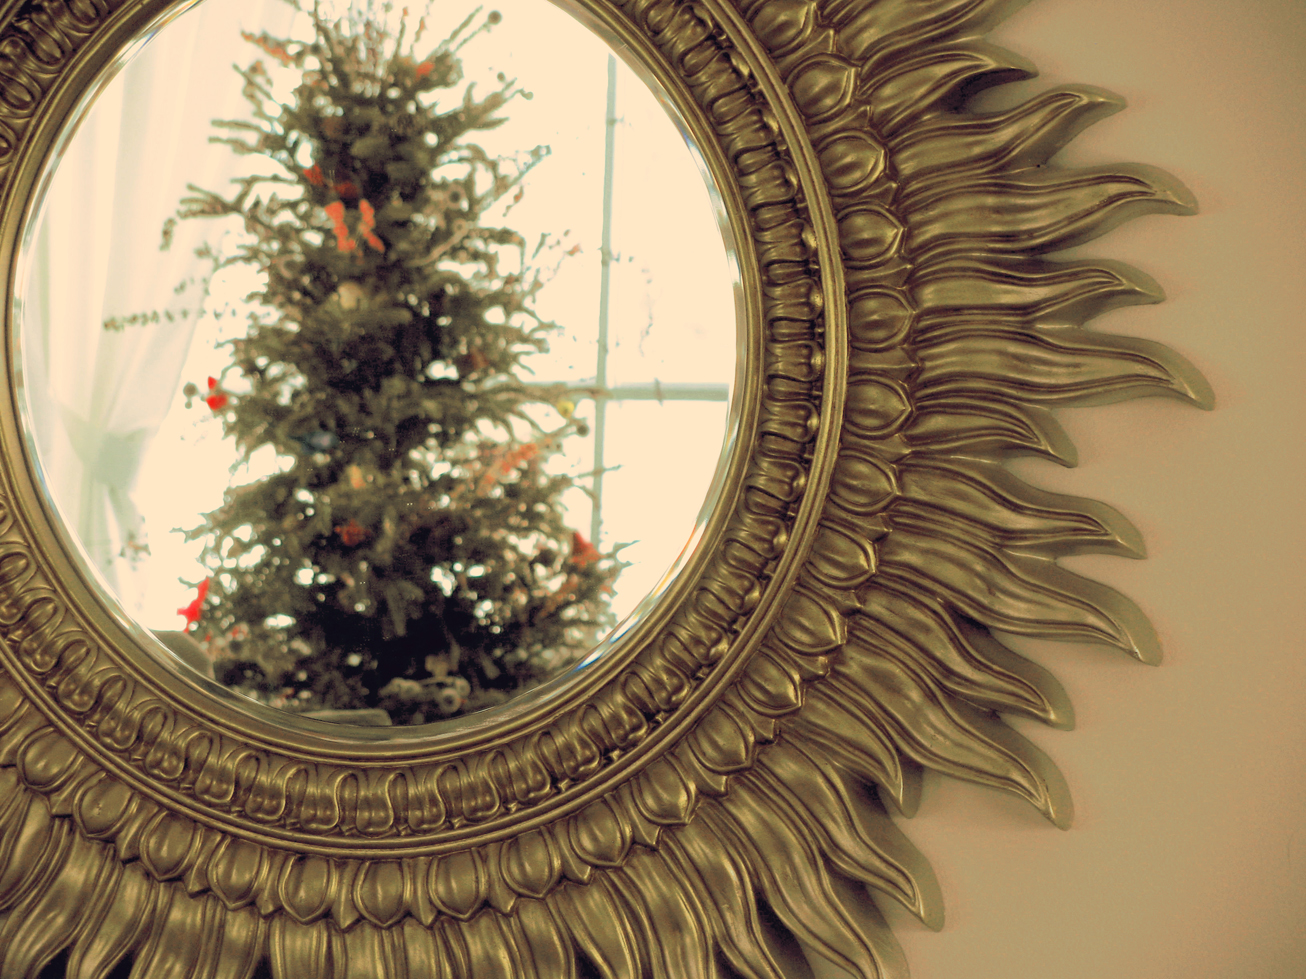 winter interior decorating: sunburst mirror